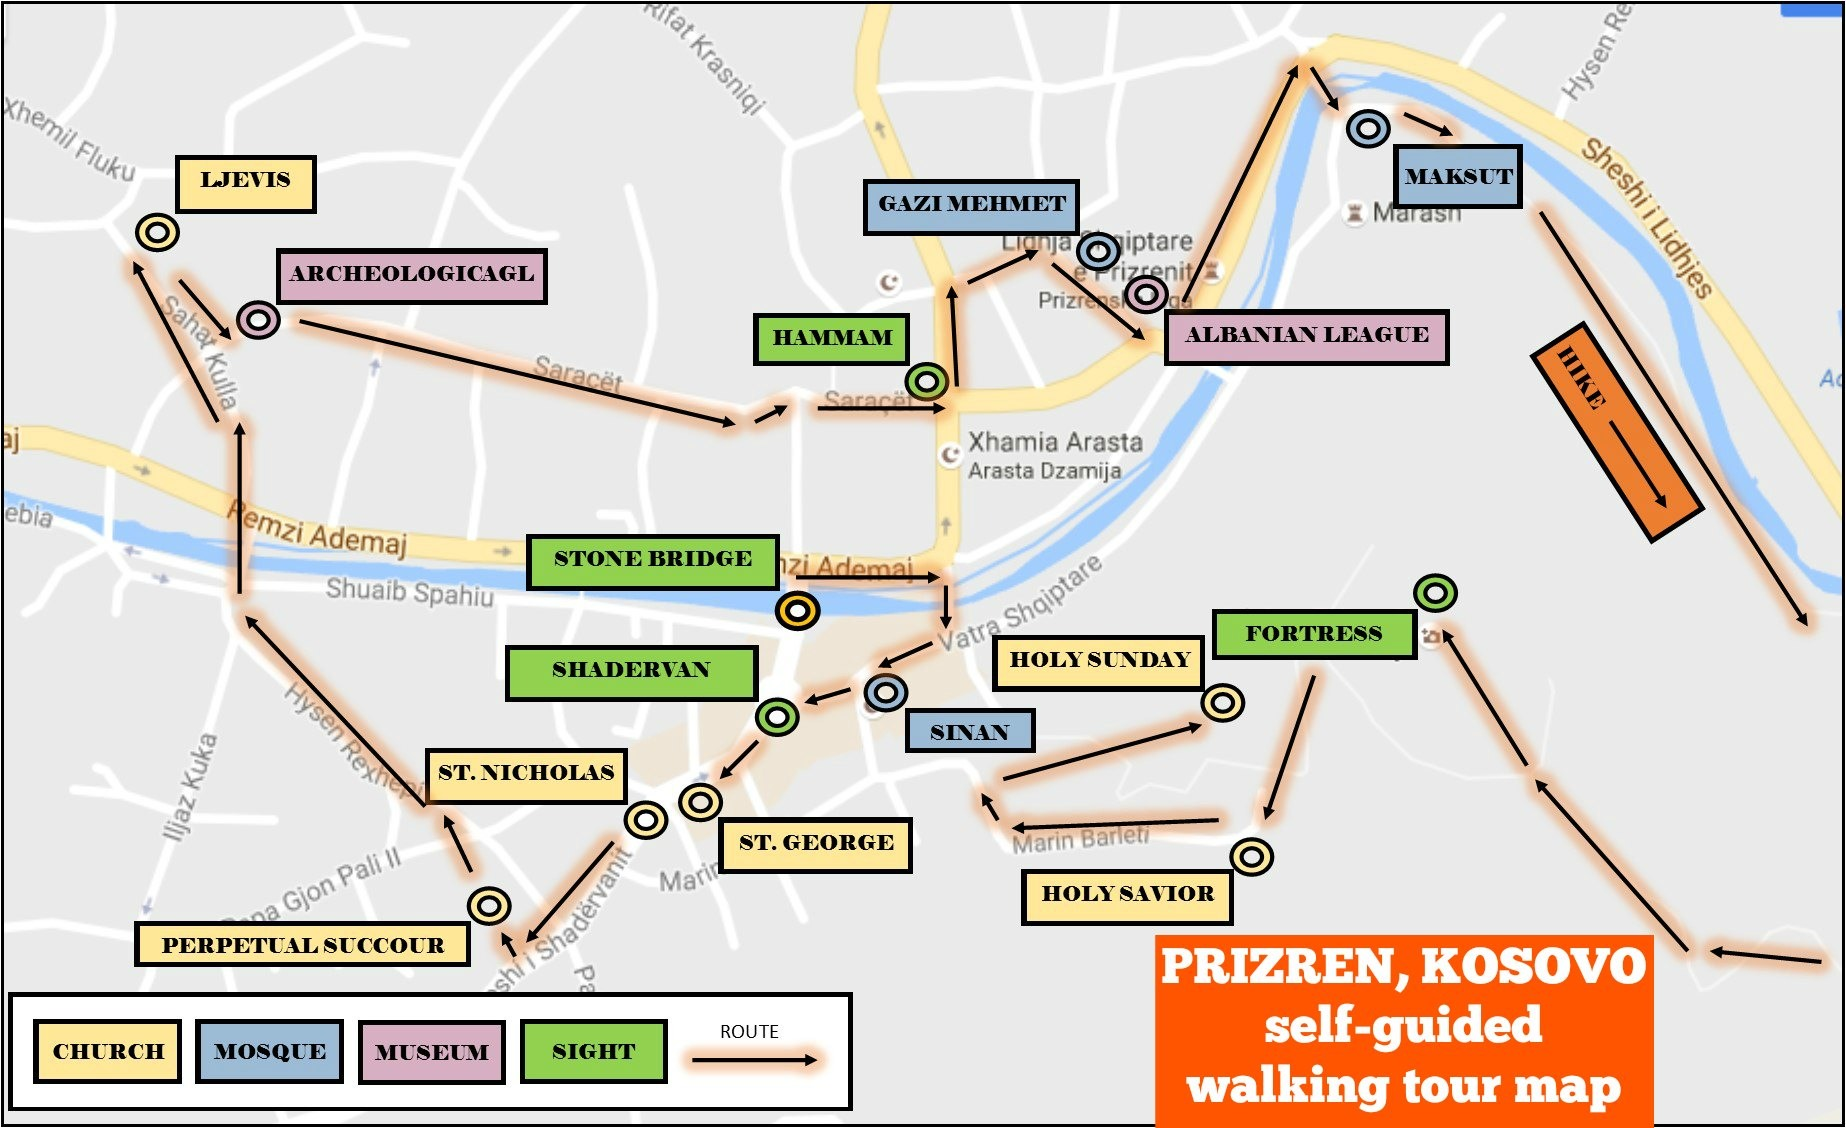 A guide to visiting prizren kosovo jetsetting fools prizren kosovo self guided walking tour map with sights and route publicscrutiny Choice Image